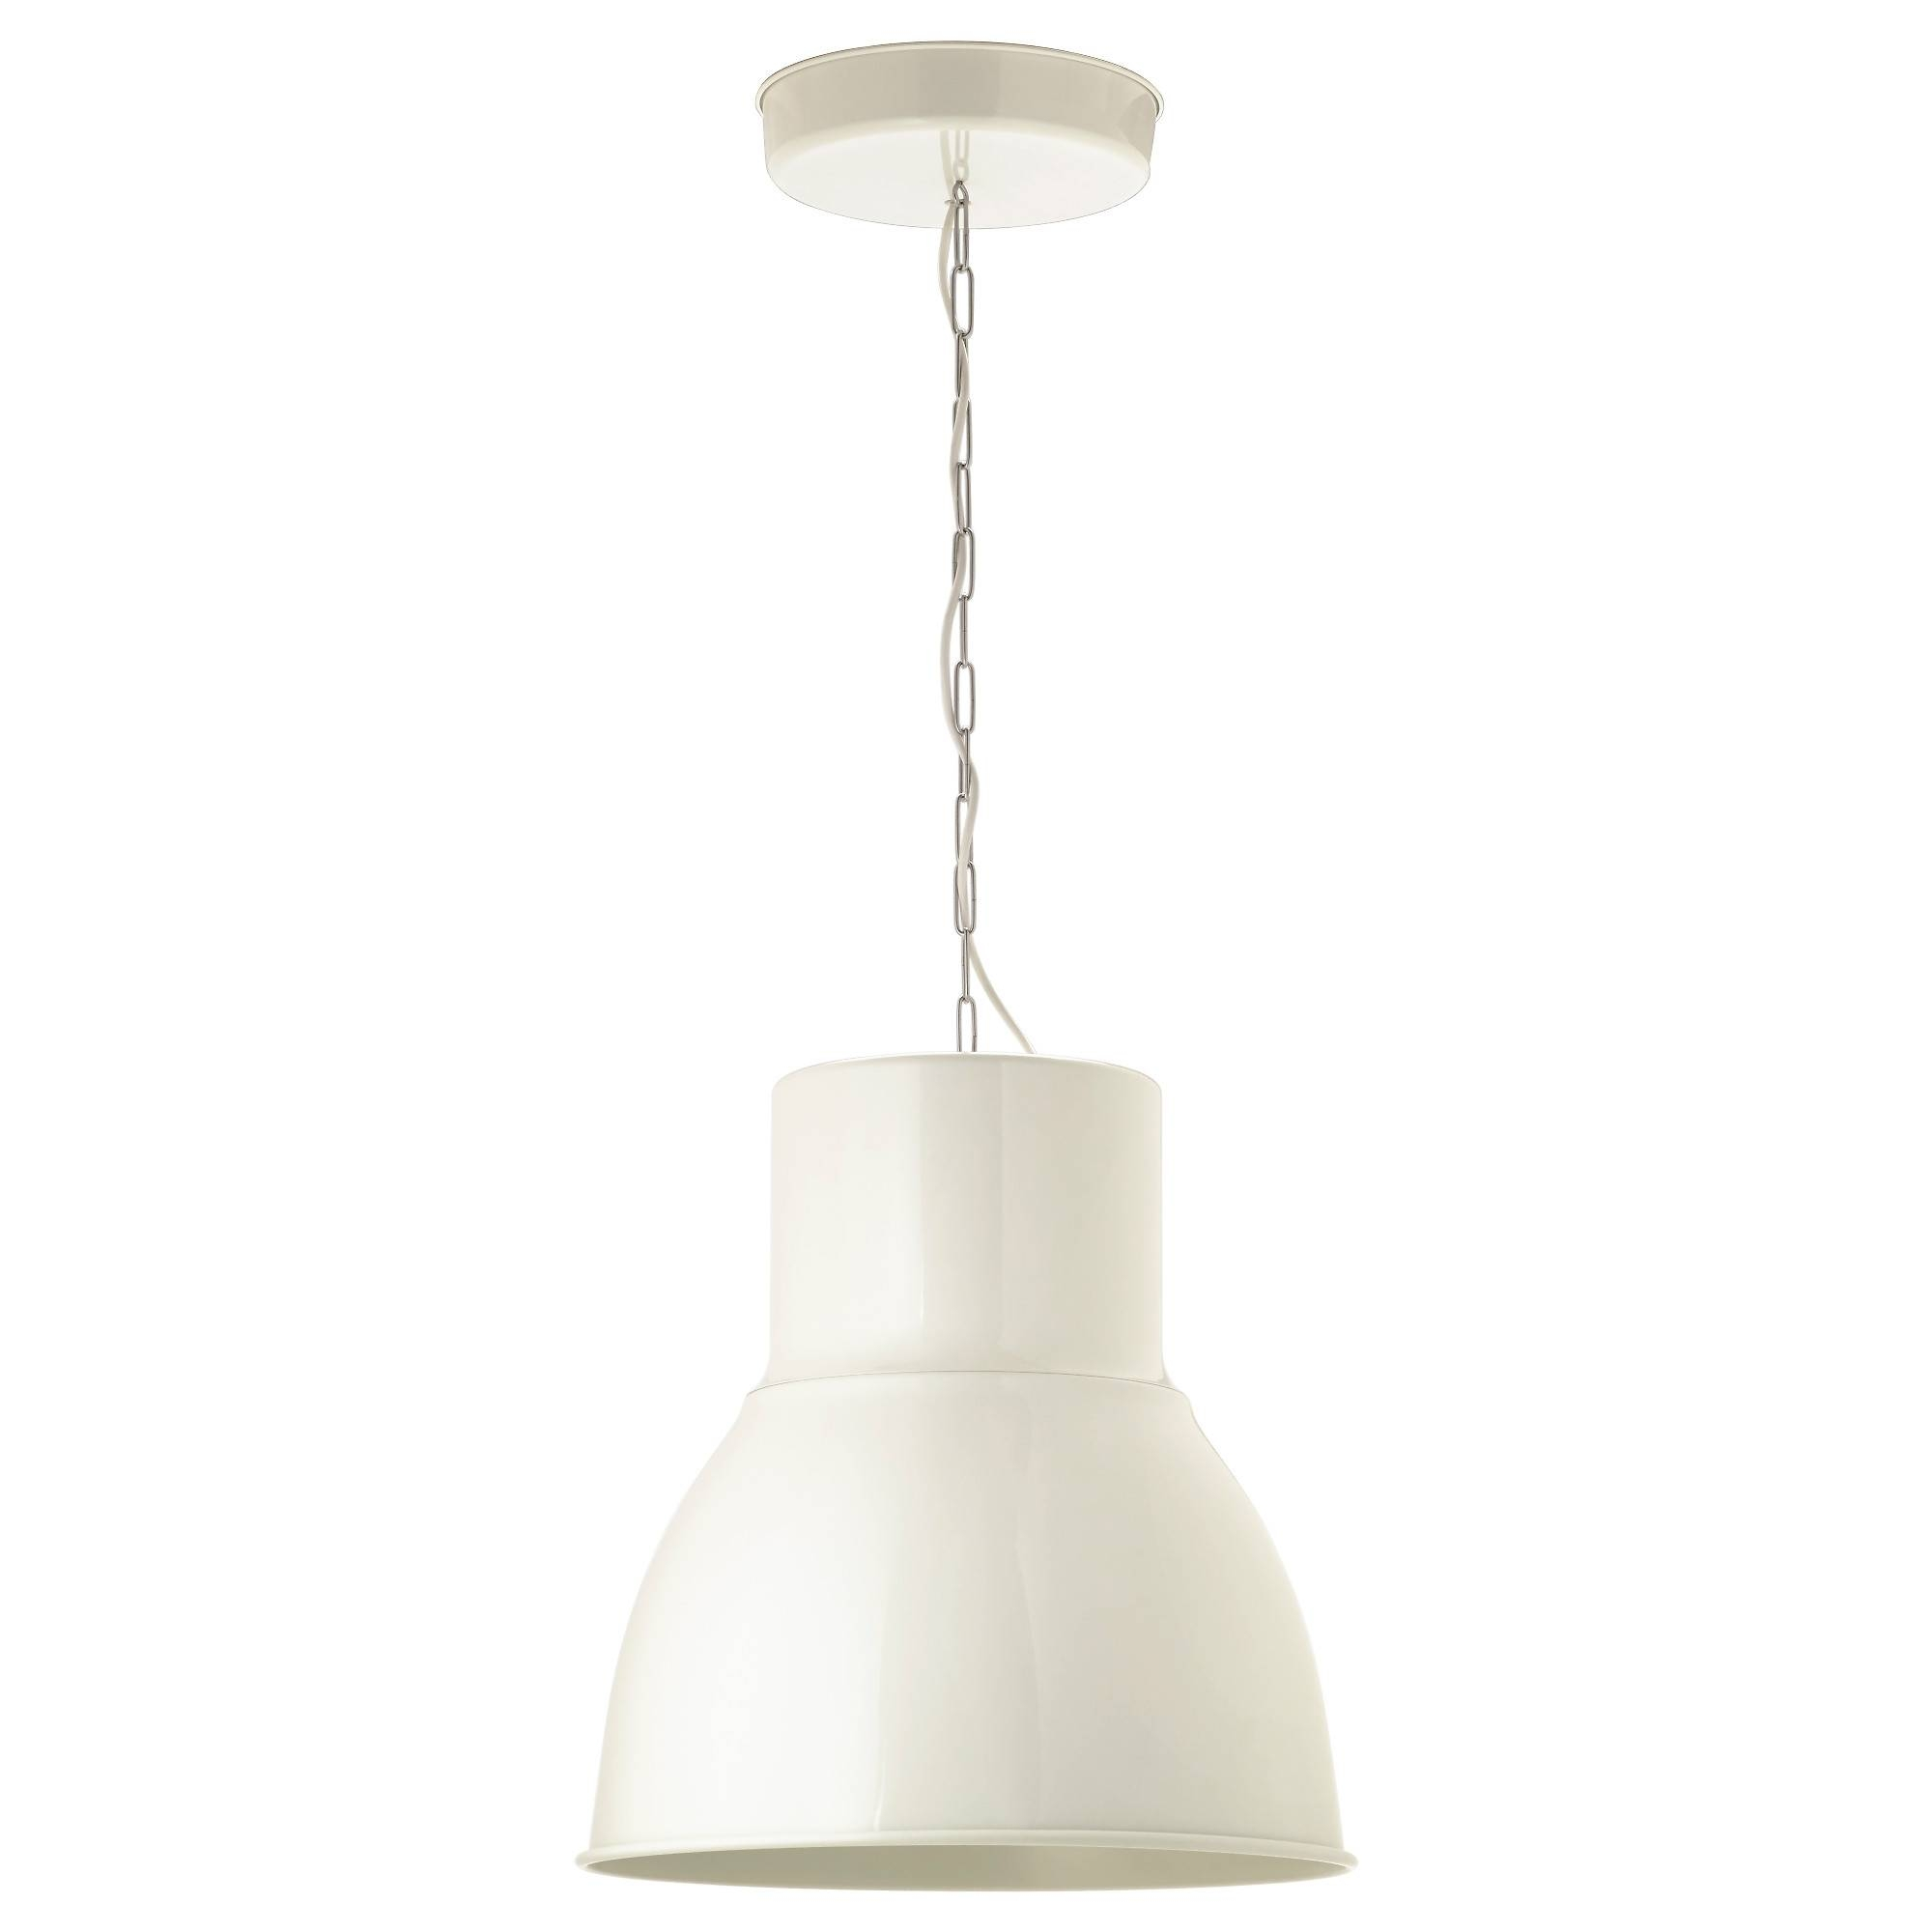 Pendant Lights & Lamp Shades - Ikea within Ikea Pendant Light Kits (Image 11 of 15)